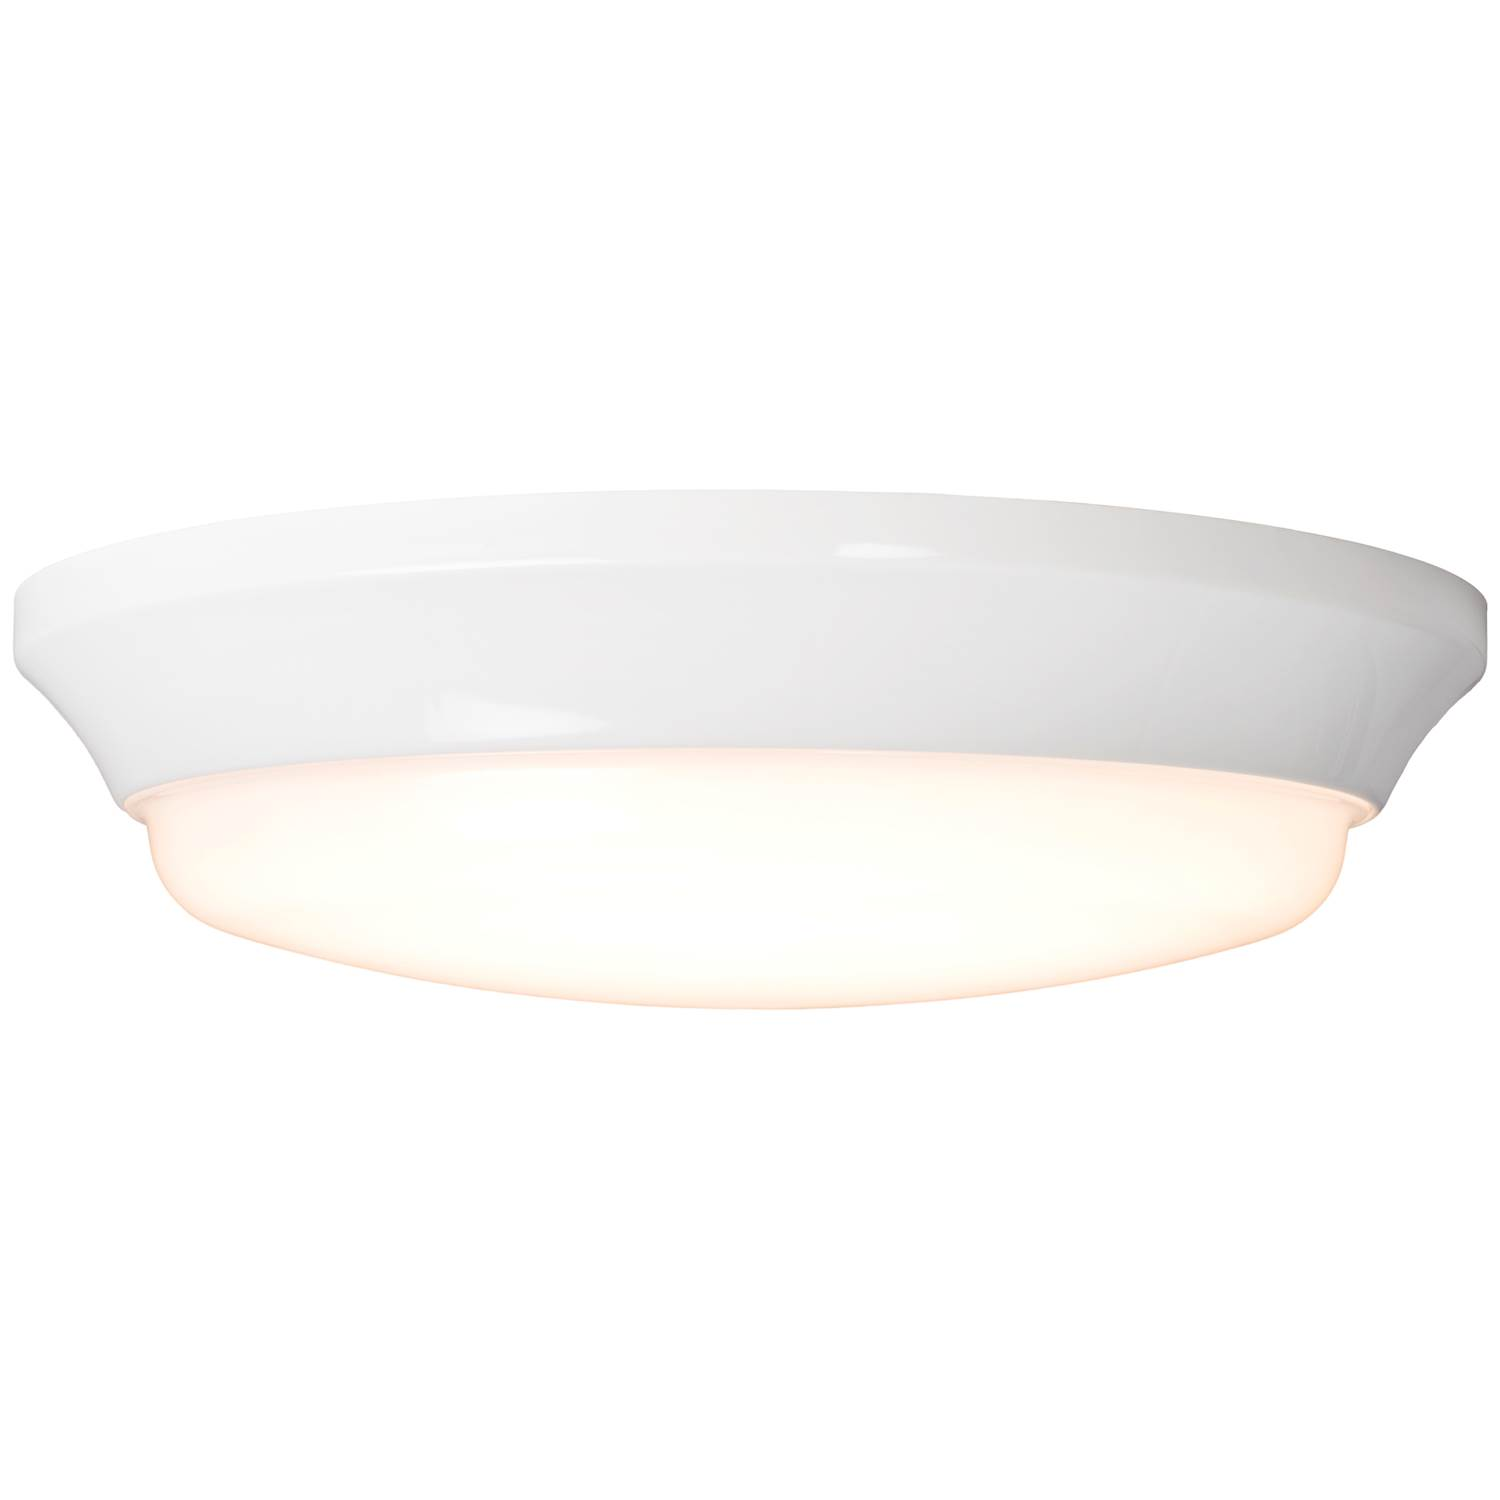 Airam Rio LED plafond Ø305mm 4000K